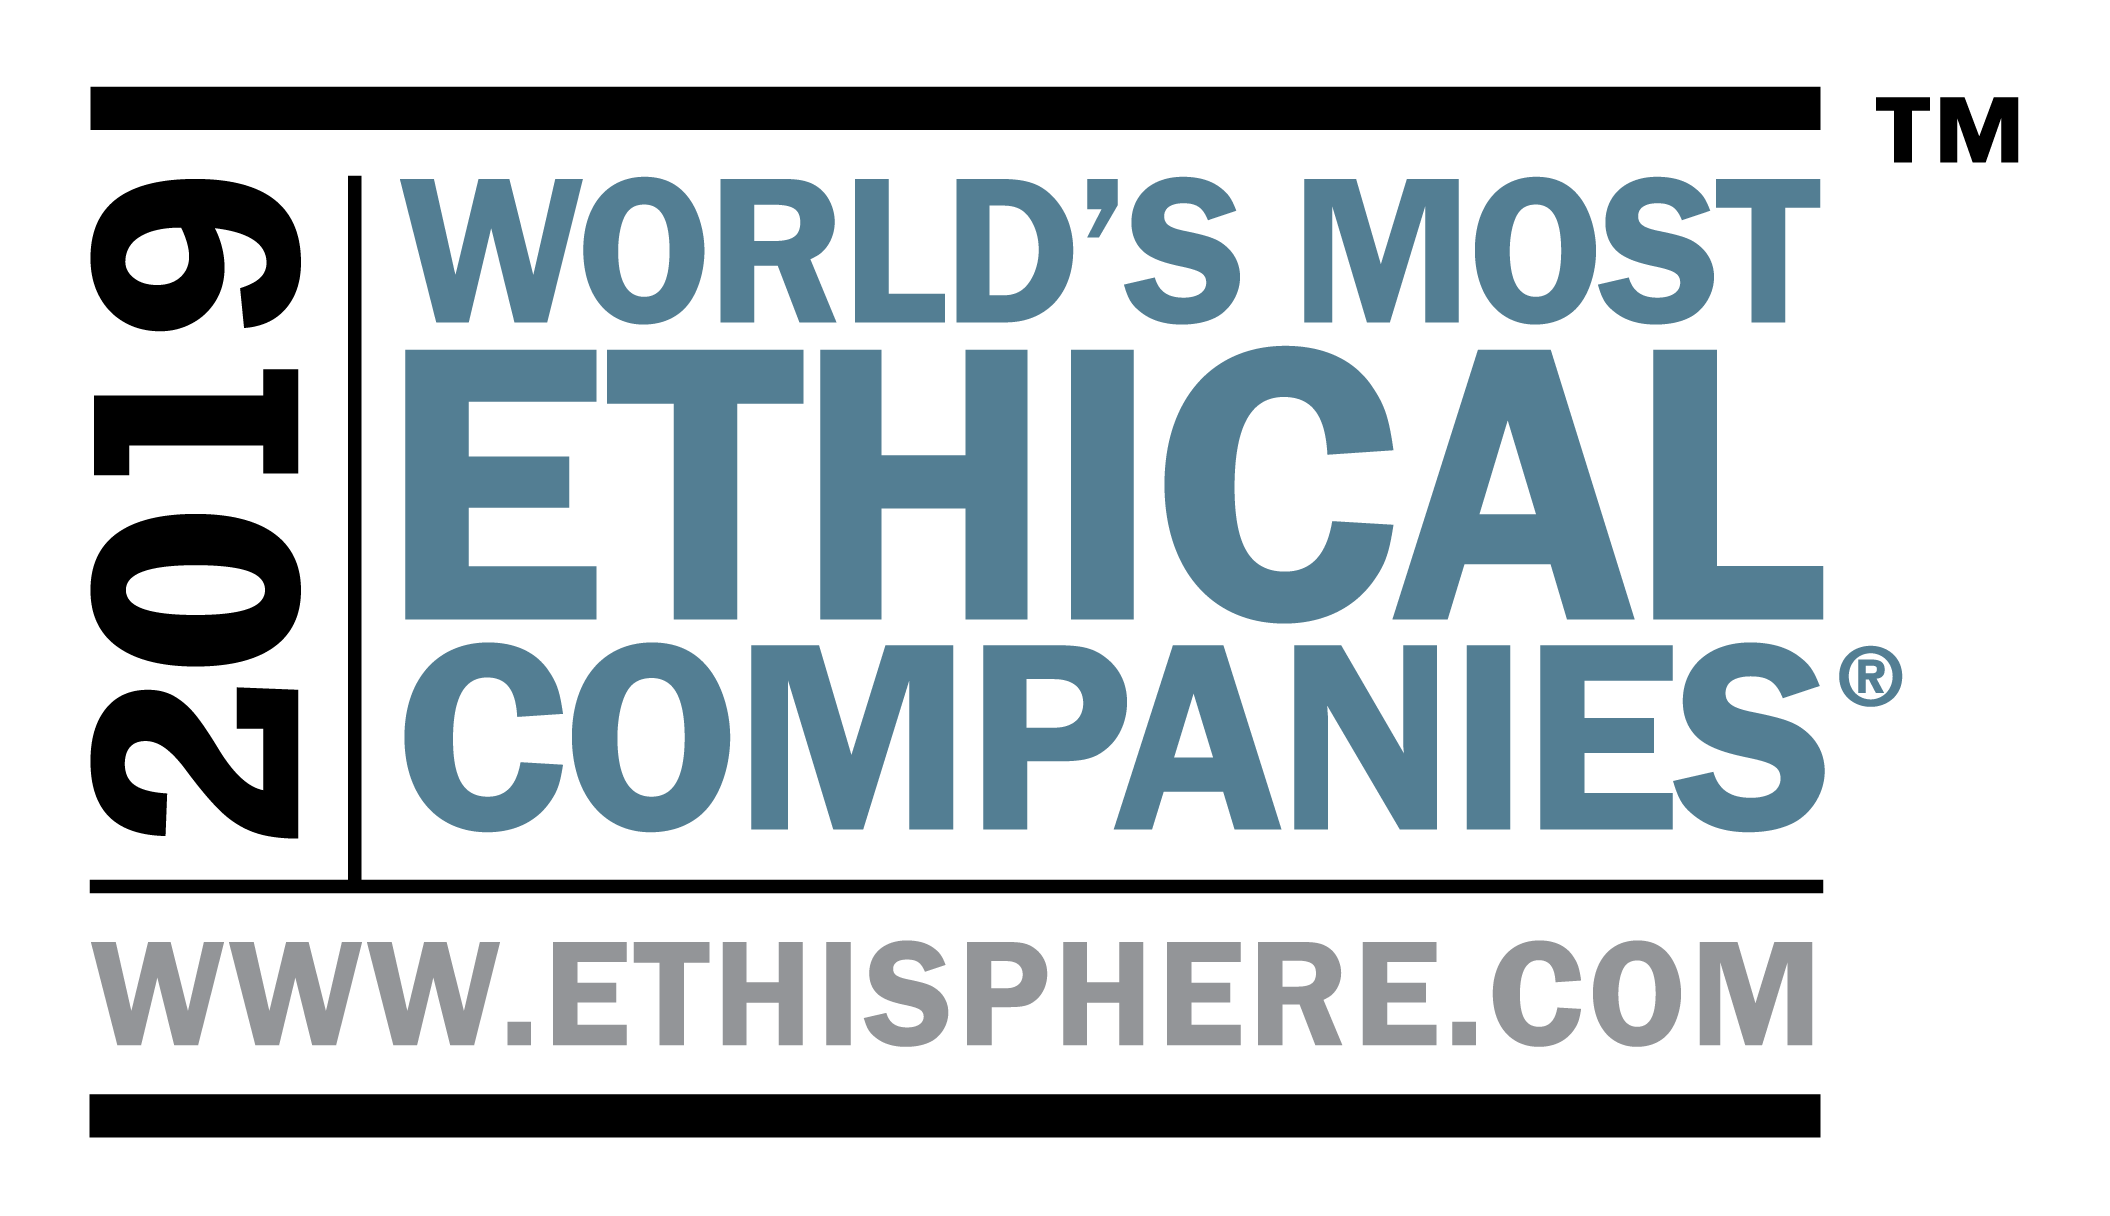 Ethisphere_WME_2019_color